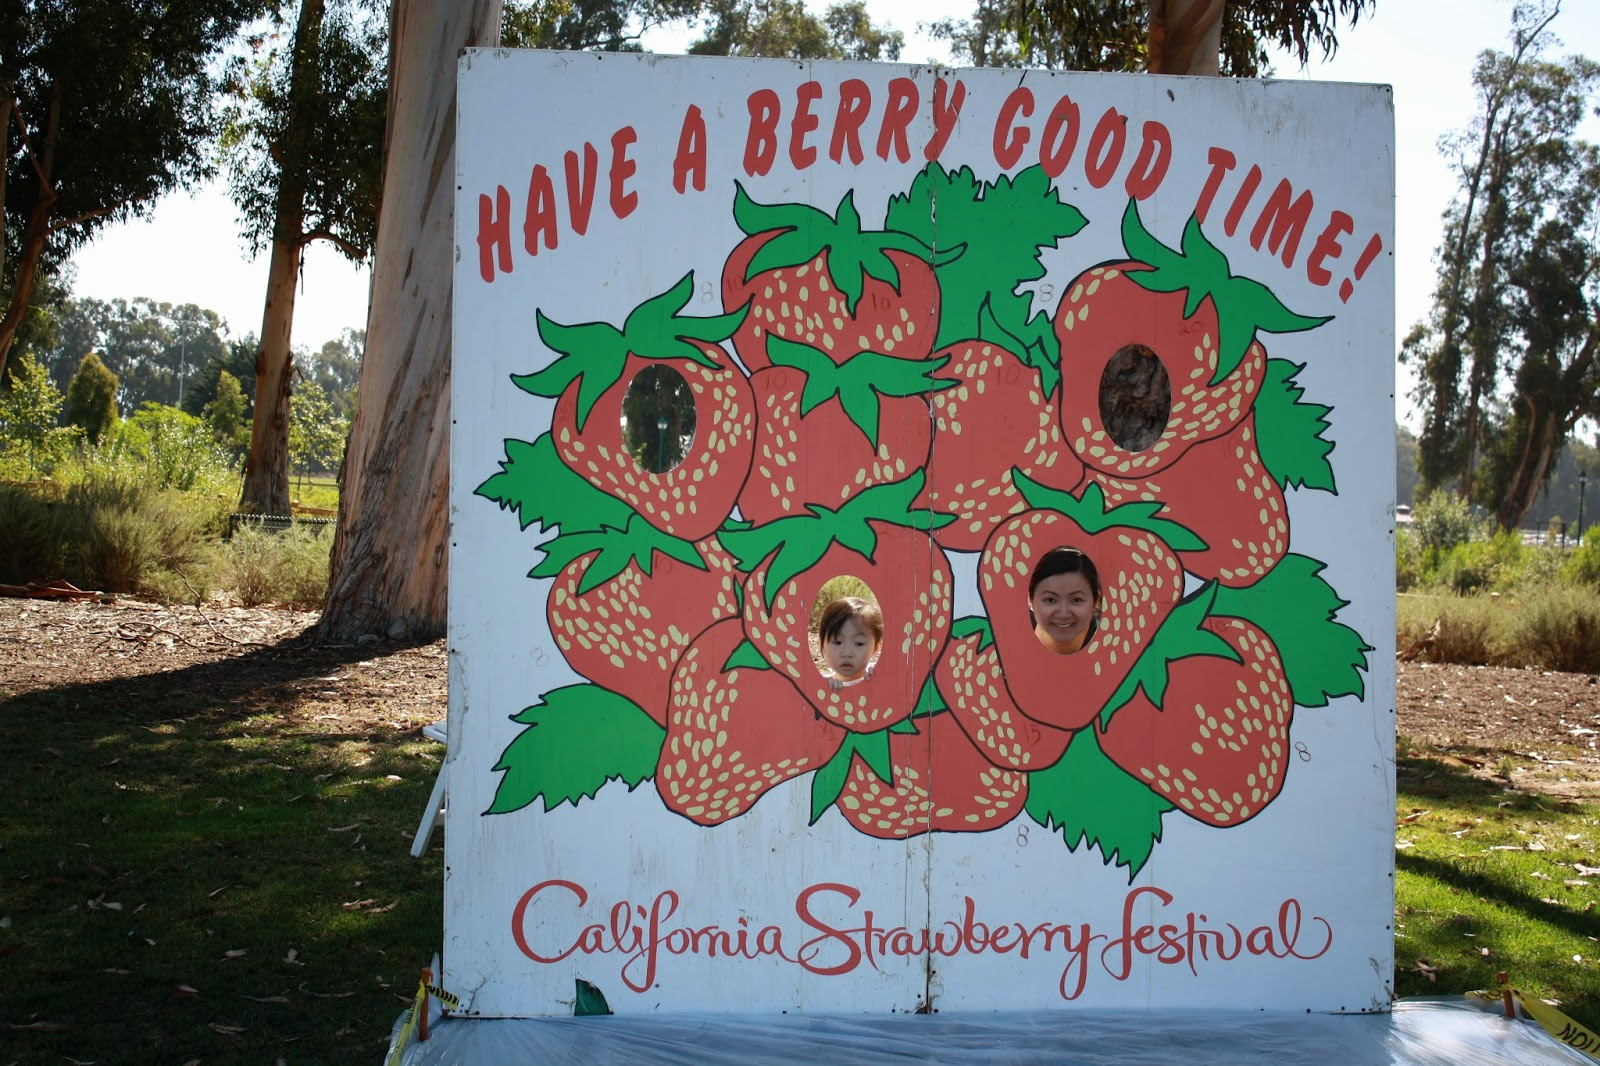 California strawberry festival discount coupons